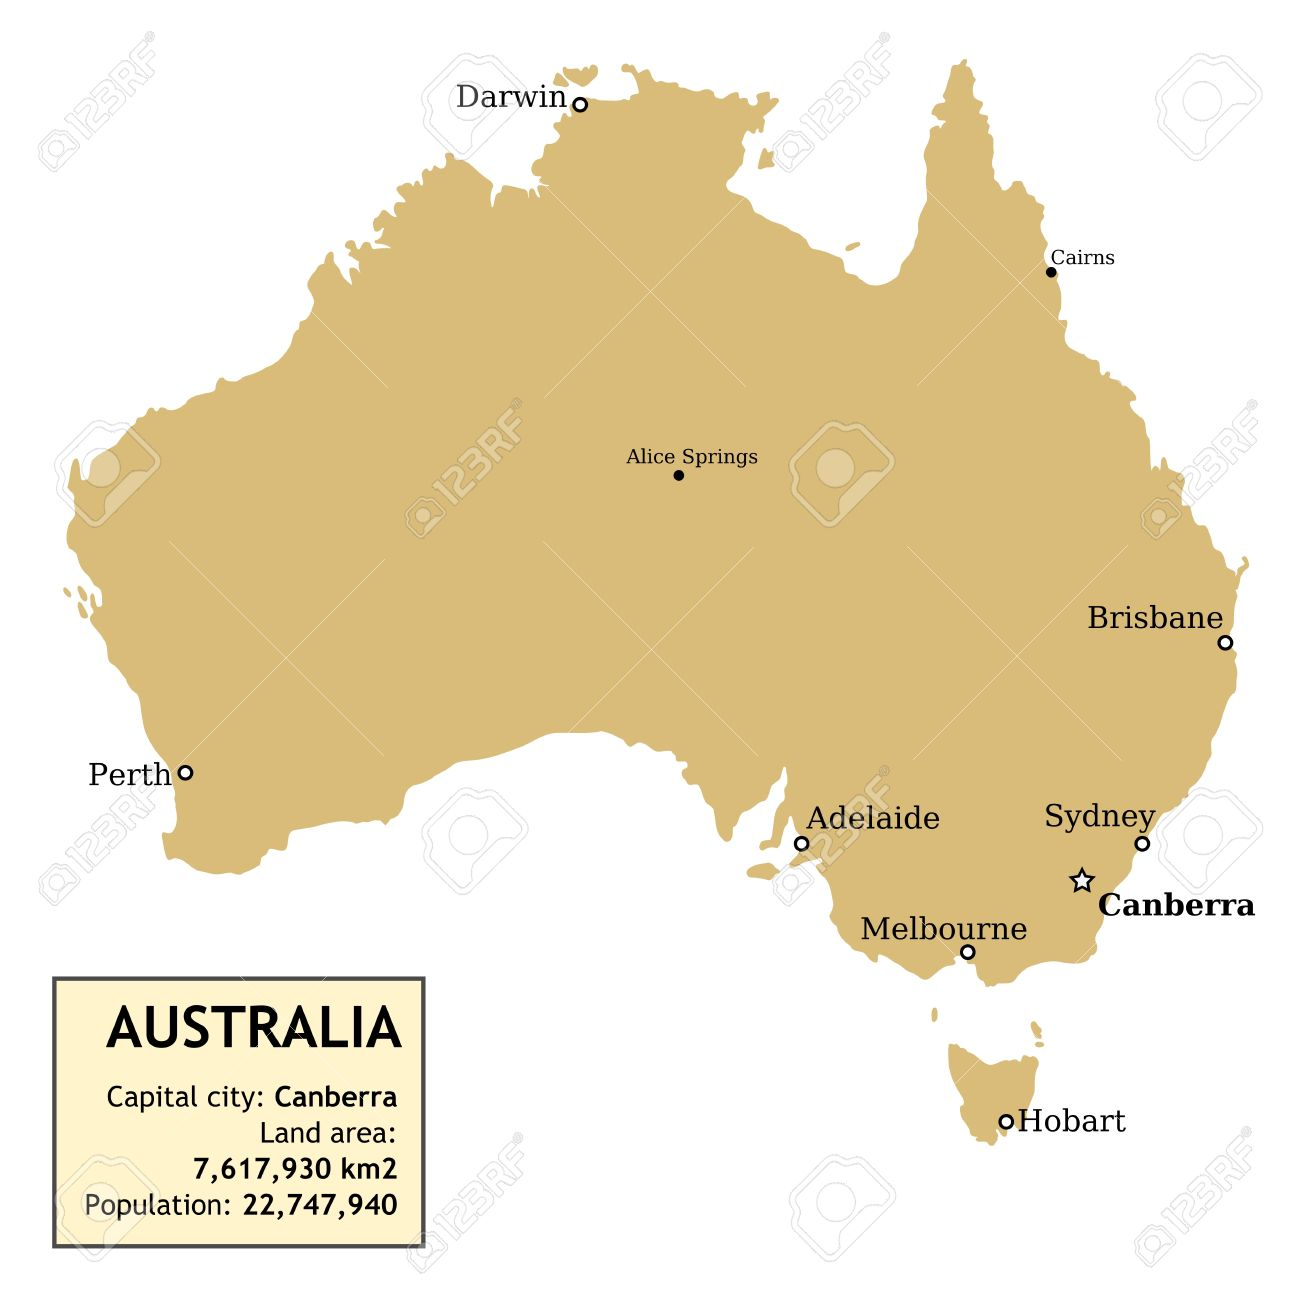 Map Of Australia With All Important Cities And Information Data – Map of Australia and Cities